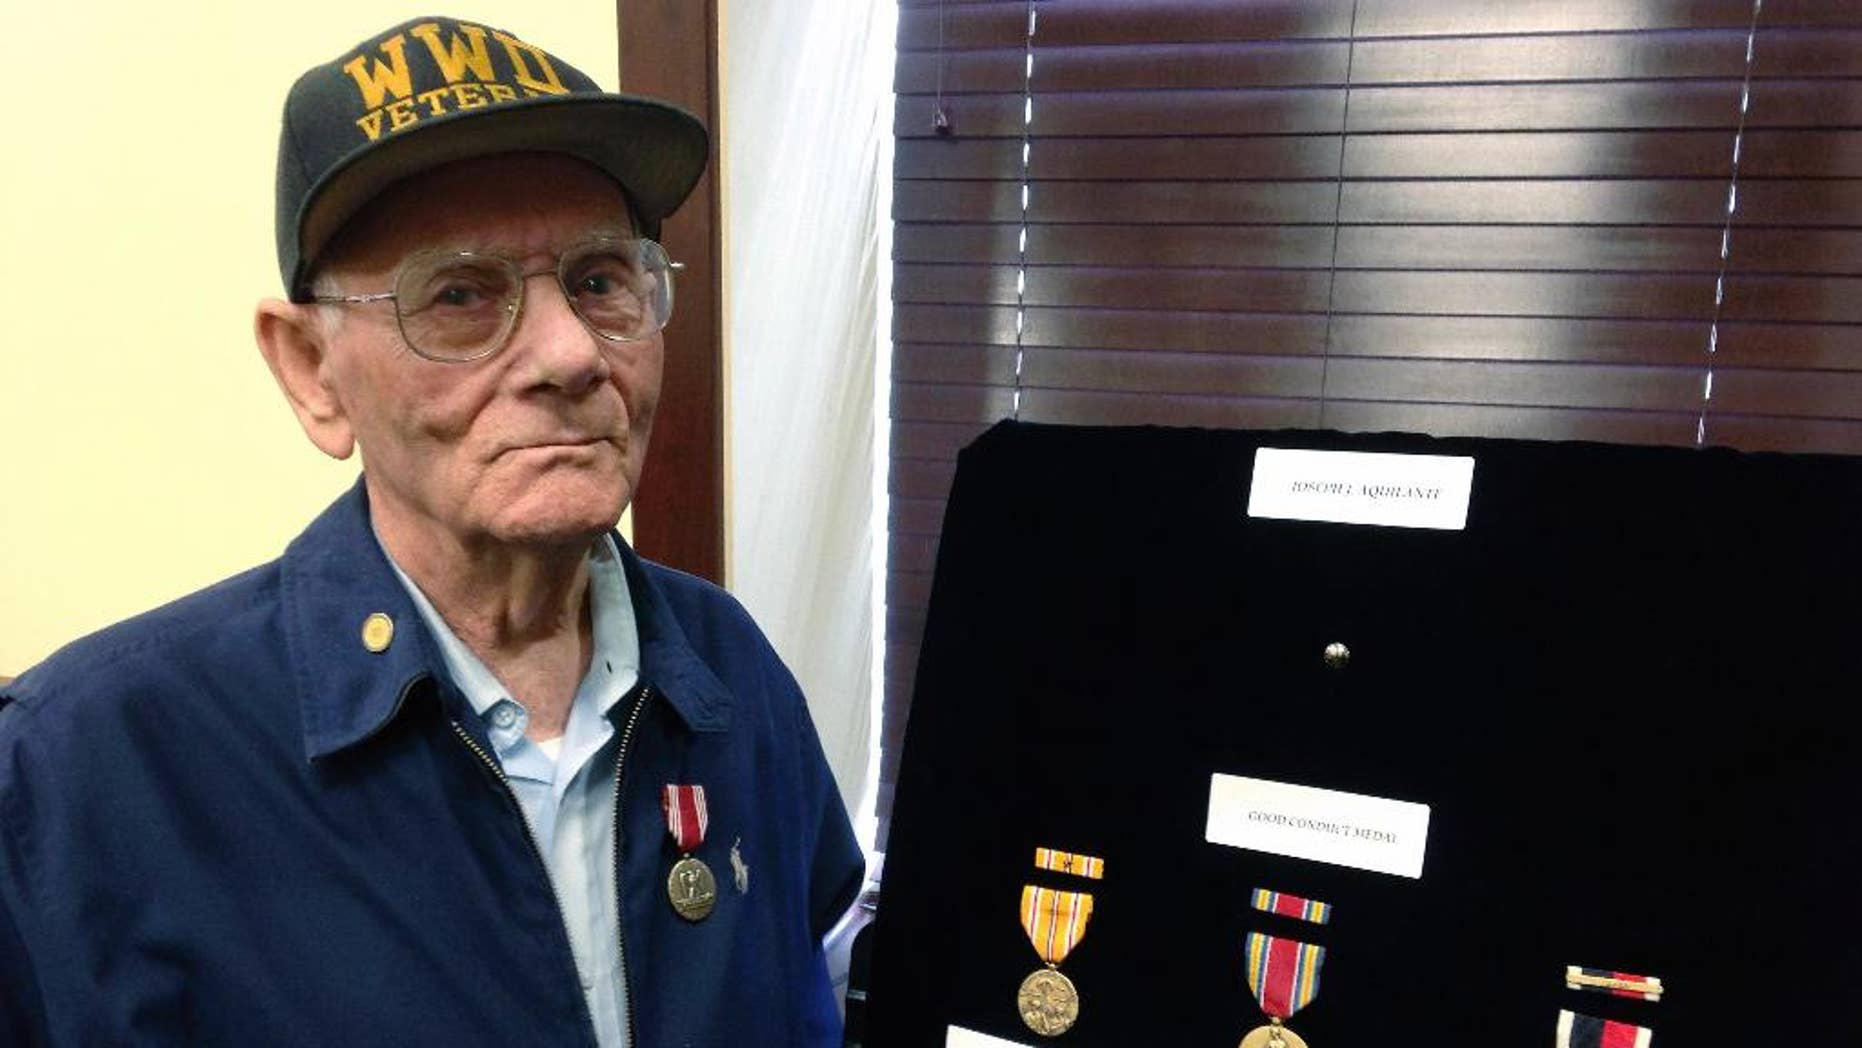 World War II veteran Joseph Aquilante, 91, of North Providence, R.I., stands beside medals presented to him by U.S. Sen. Jack Reed, Monday, May 15, 2017, at the senator's office in Cranston, R.I. Joseph Aquilante, of North Providence, sought the medals so he could leave them for his grandchildren and great-grandchildren. He says he wants to pass them on as a keepsake and part of history. (AP Photo/Jennifer McDermott)